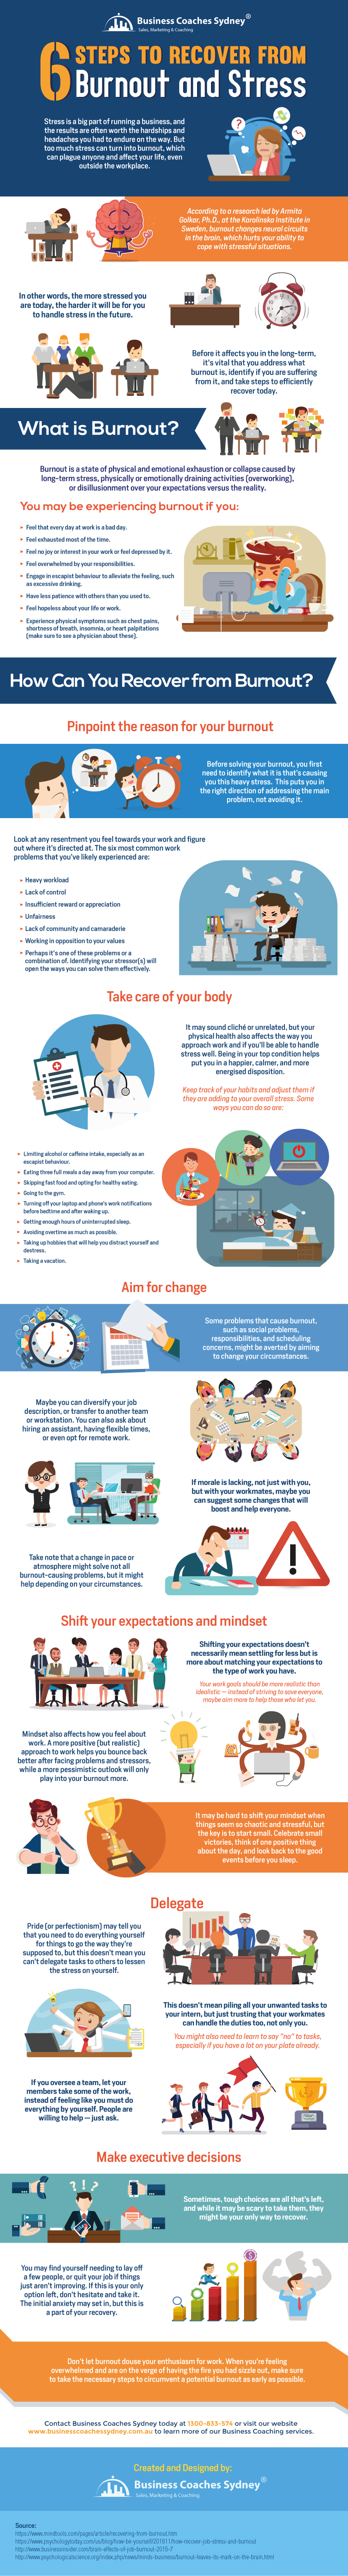 6 Steps To Recover From Burnout And Stress [INFOGRAPHIC]